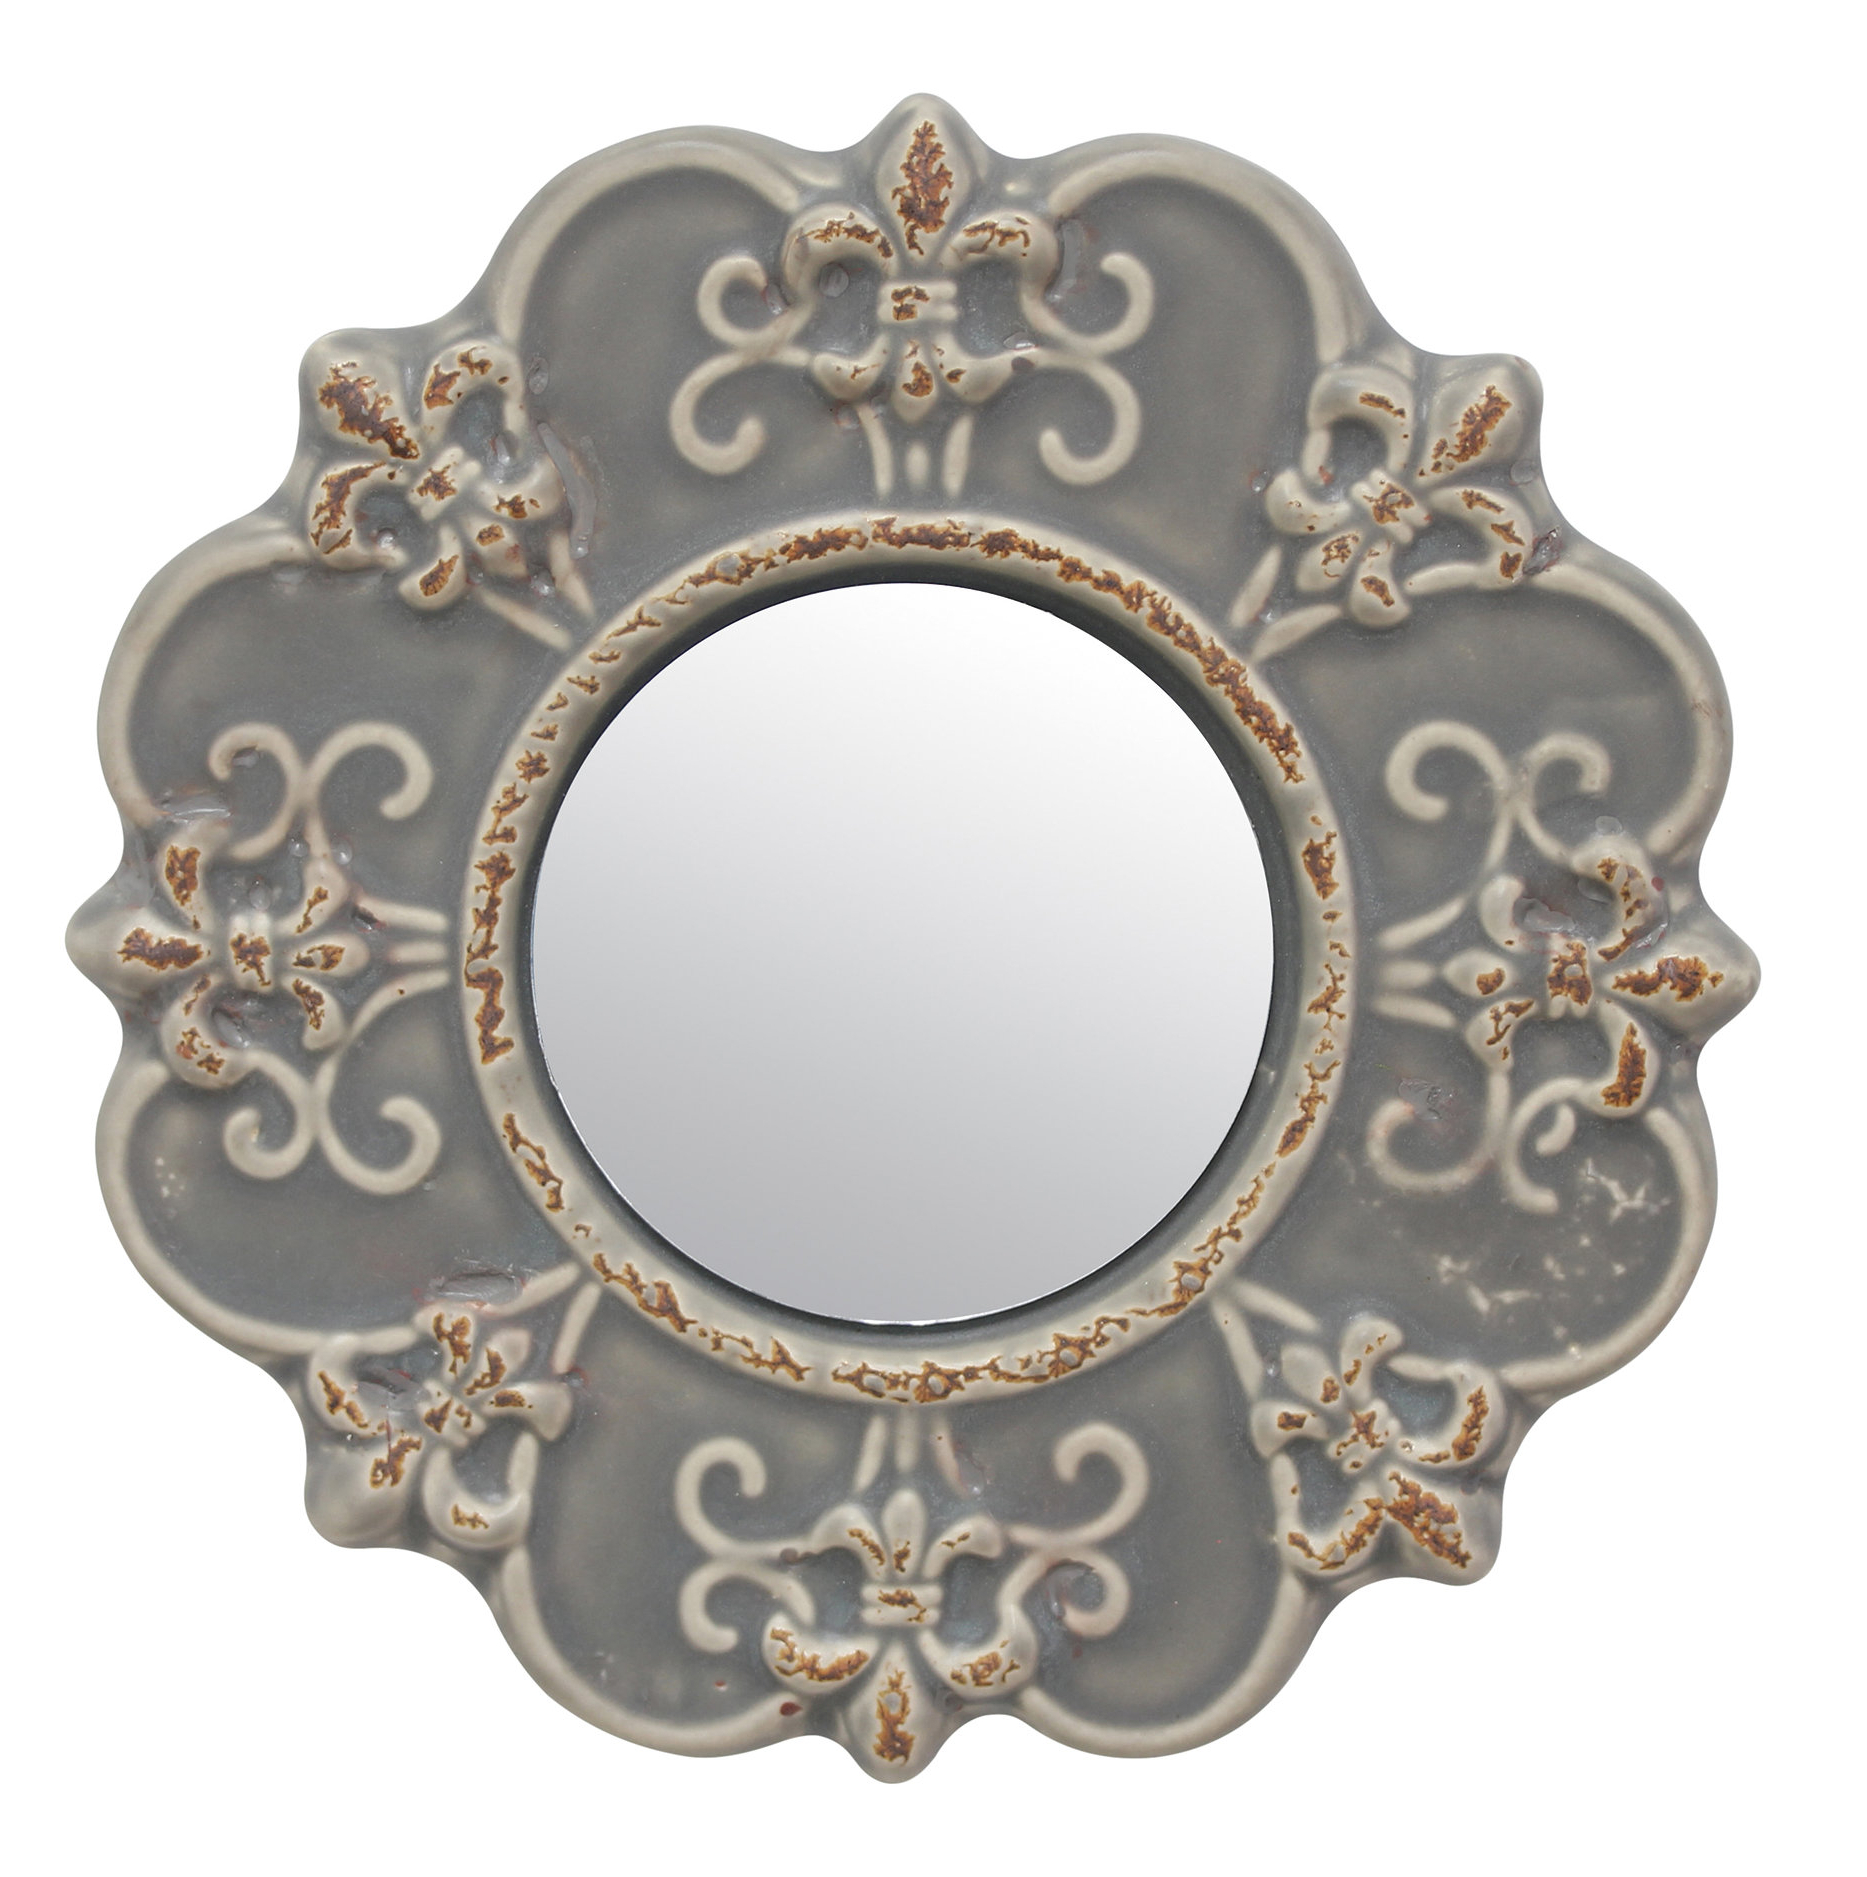 Newest Knott Modern & Contemporary Accent Mirrors Intended For Coulson Ceramic Accent Wall Mirror (Gallery 14 of 20)